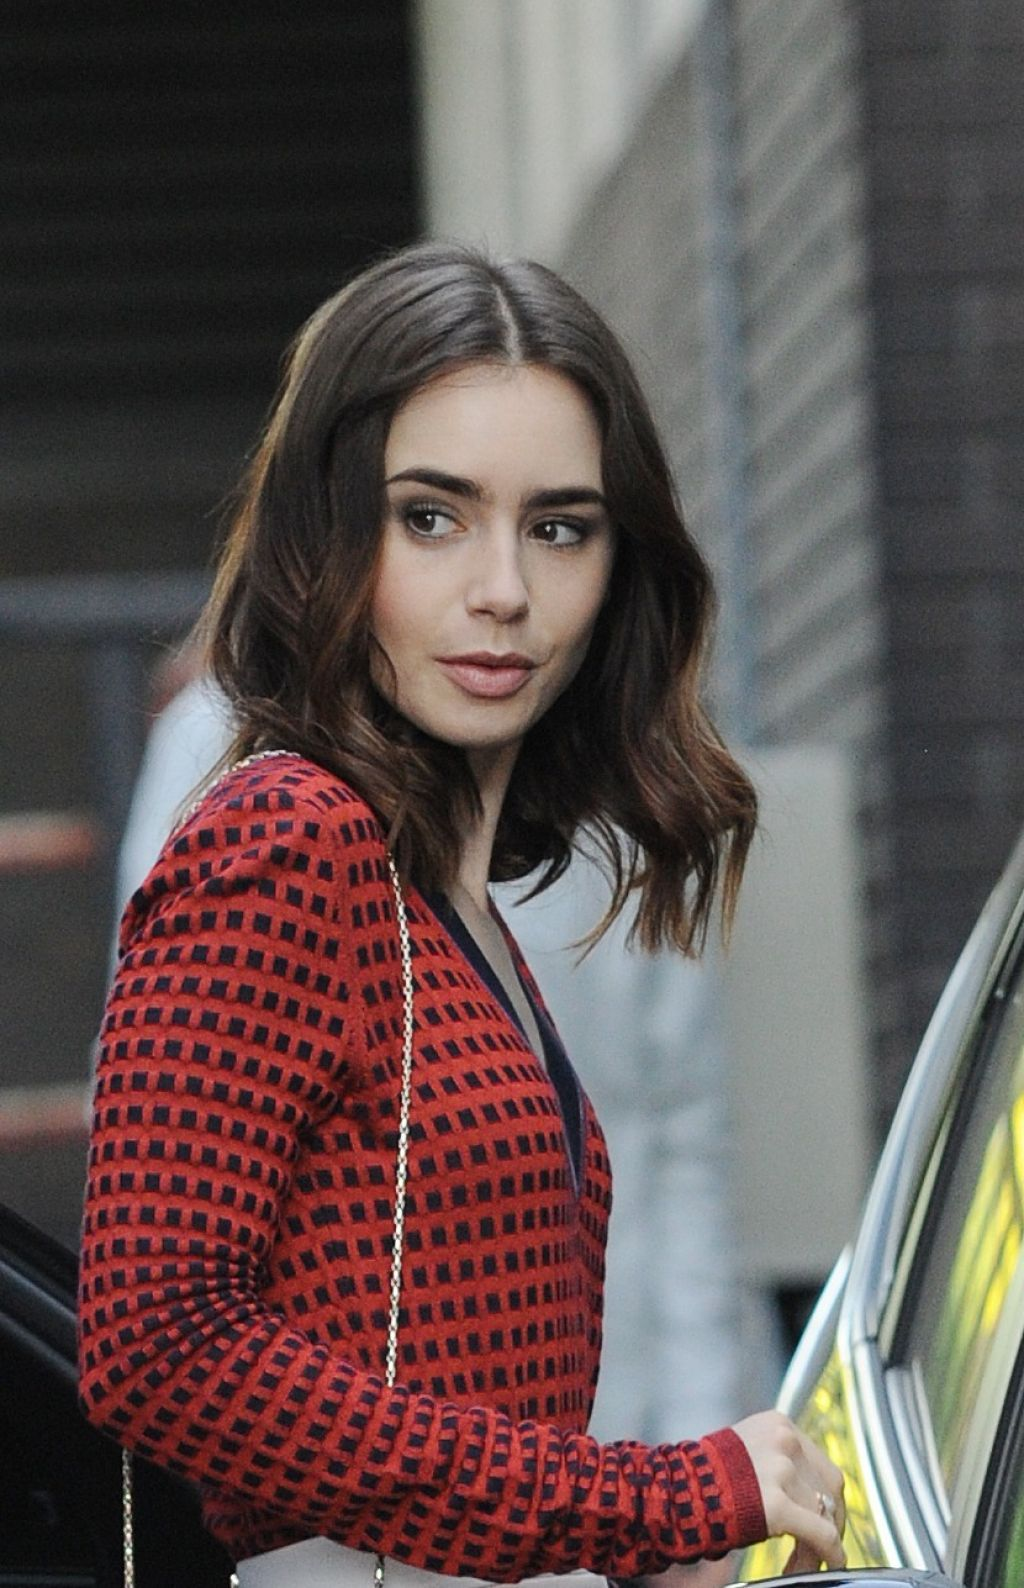 Lily Collins Style And Fashion Inspirations Outside Itv